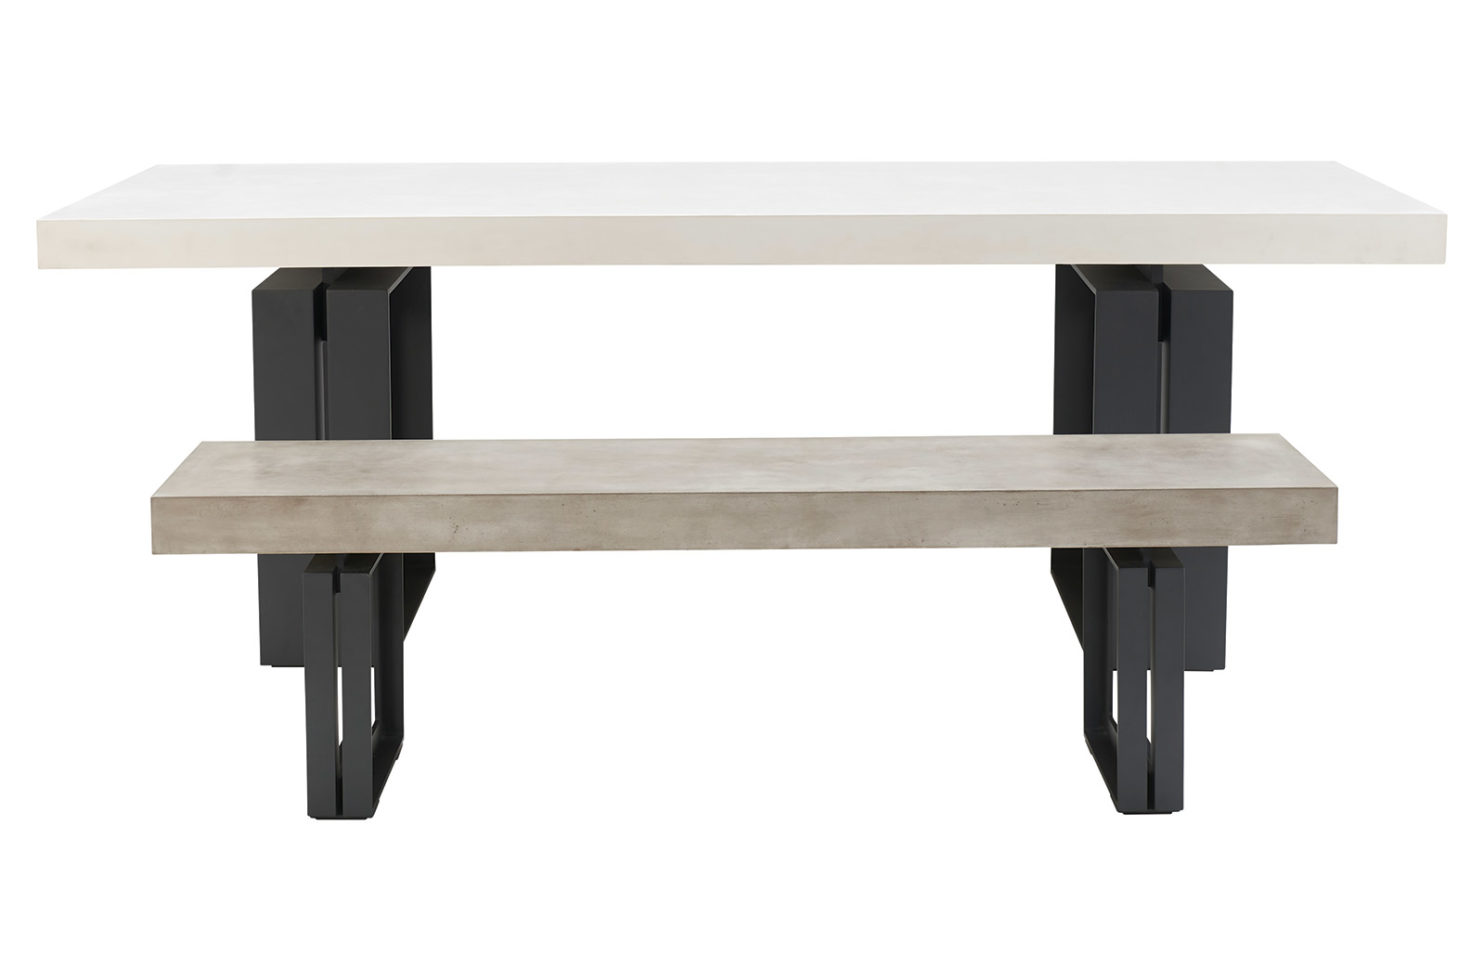 Perpetual senza 87 w bench 501FT183P2W 87 501FT183P2G front